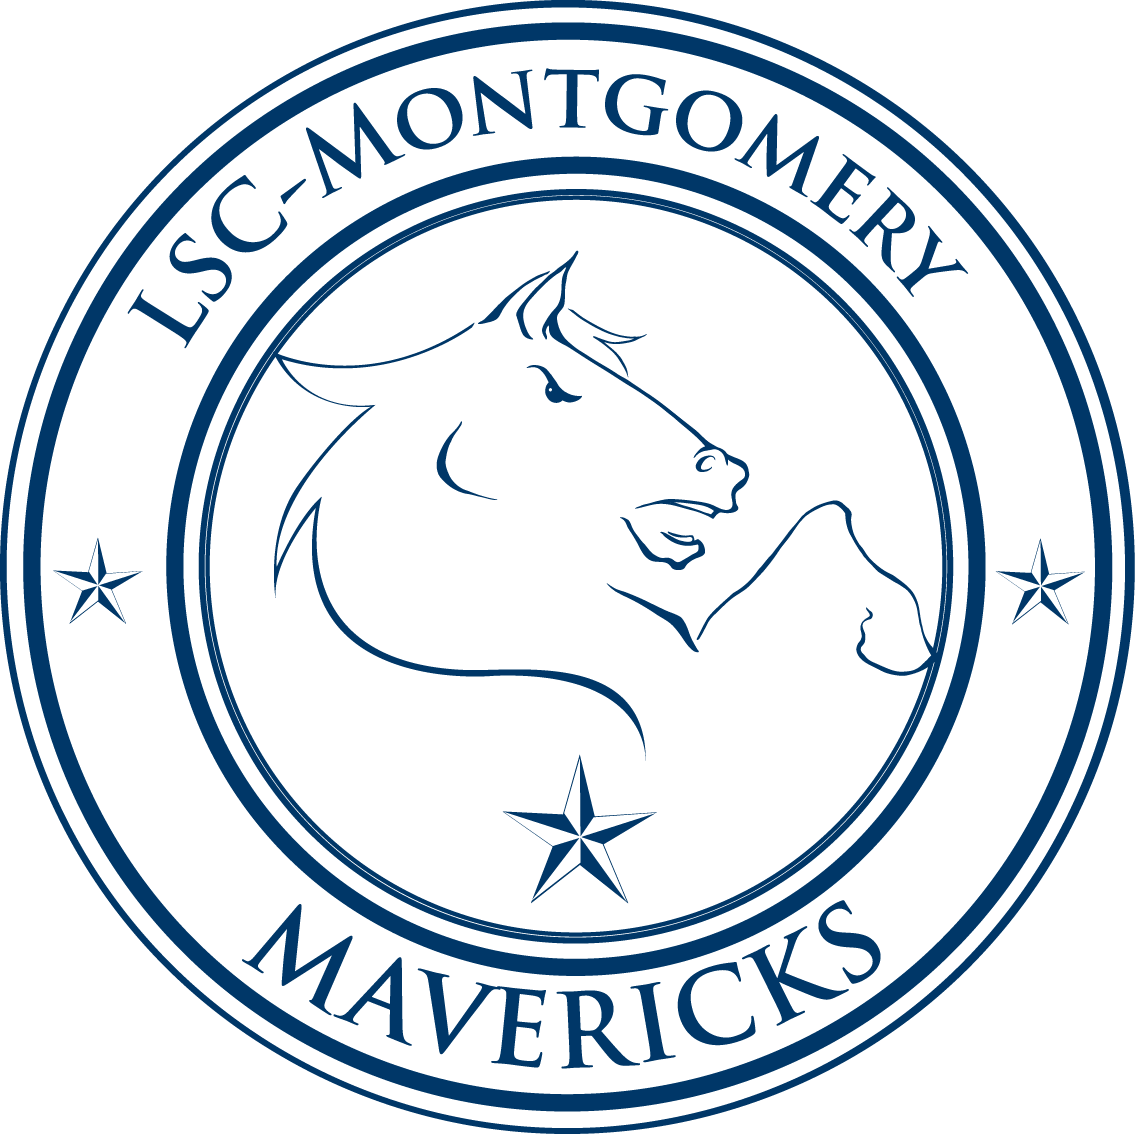 Maverick Seal